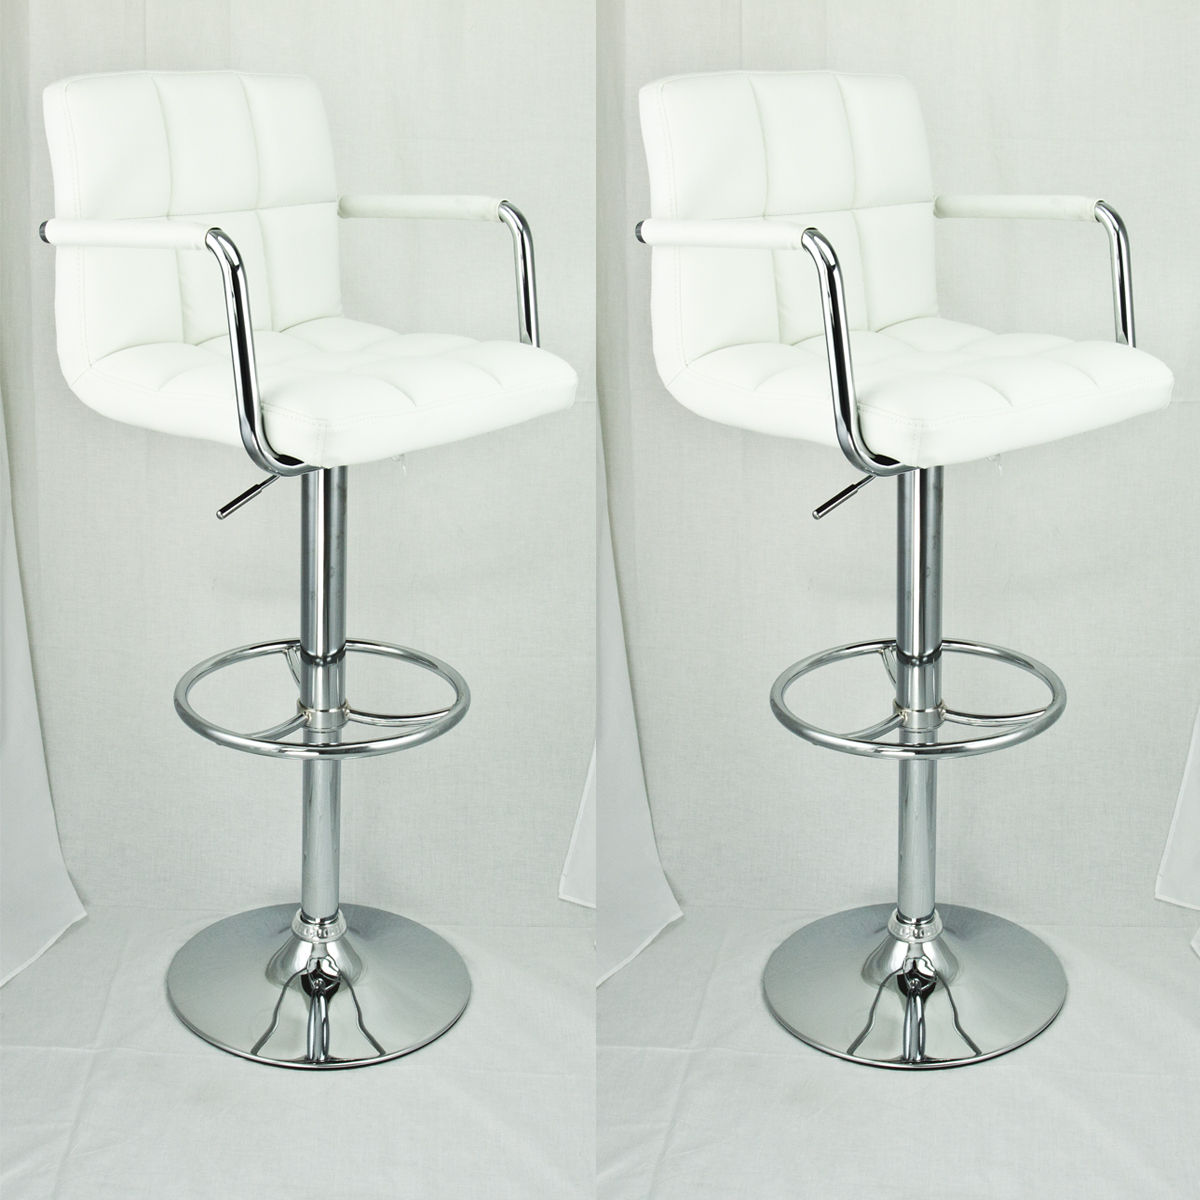 2 Set Swivel Barstools White Arm Leather Modern Adjustable ...